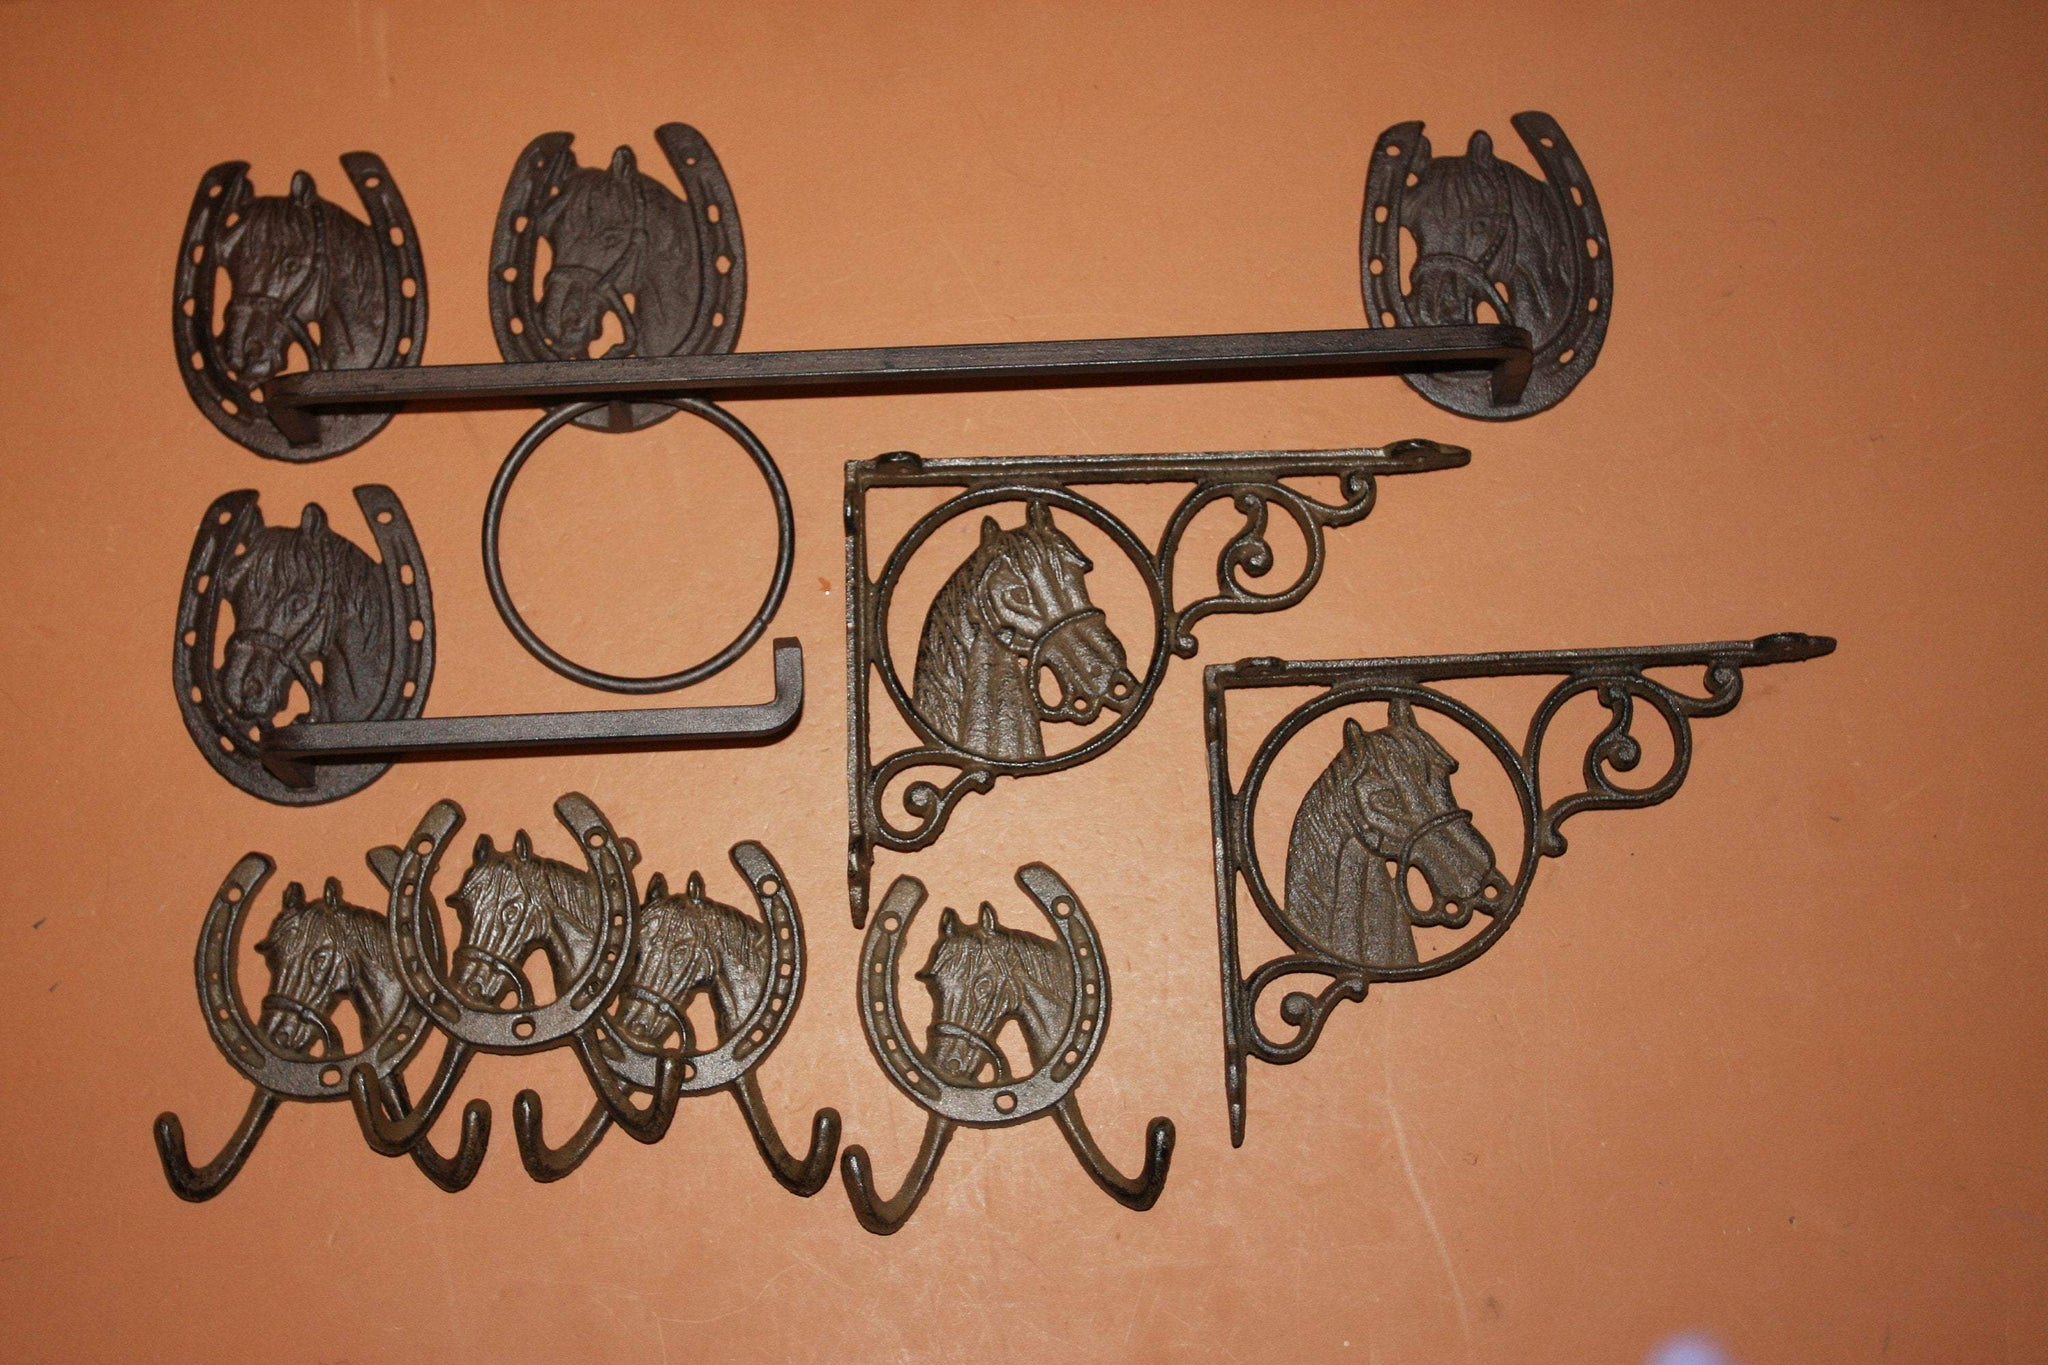 9) Equestrian Bath Accessories  Vintage Look Cast Iron Set of 9 Towel Bar Ring TP Holder Towel Hooks Bath Shelf Brackets, 2-H